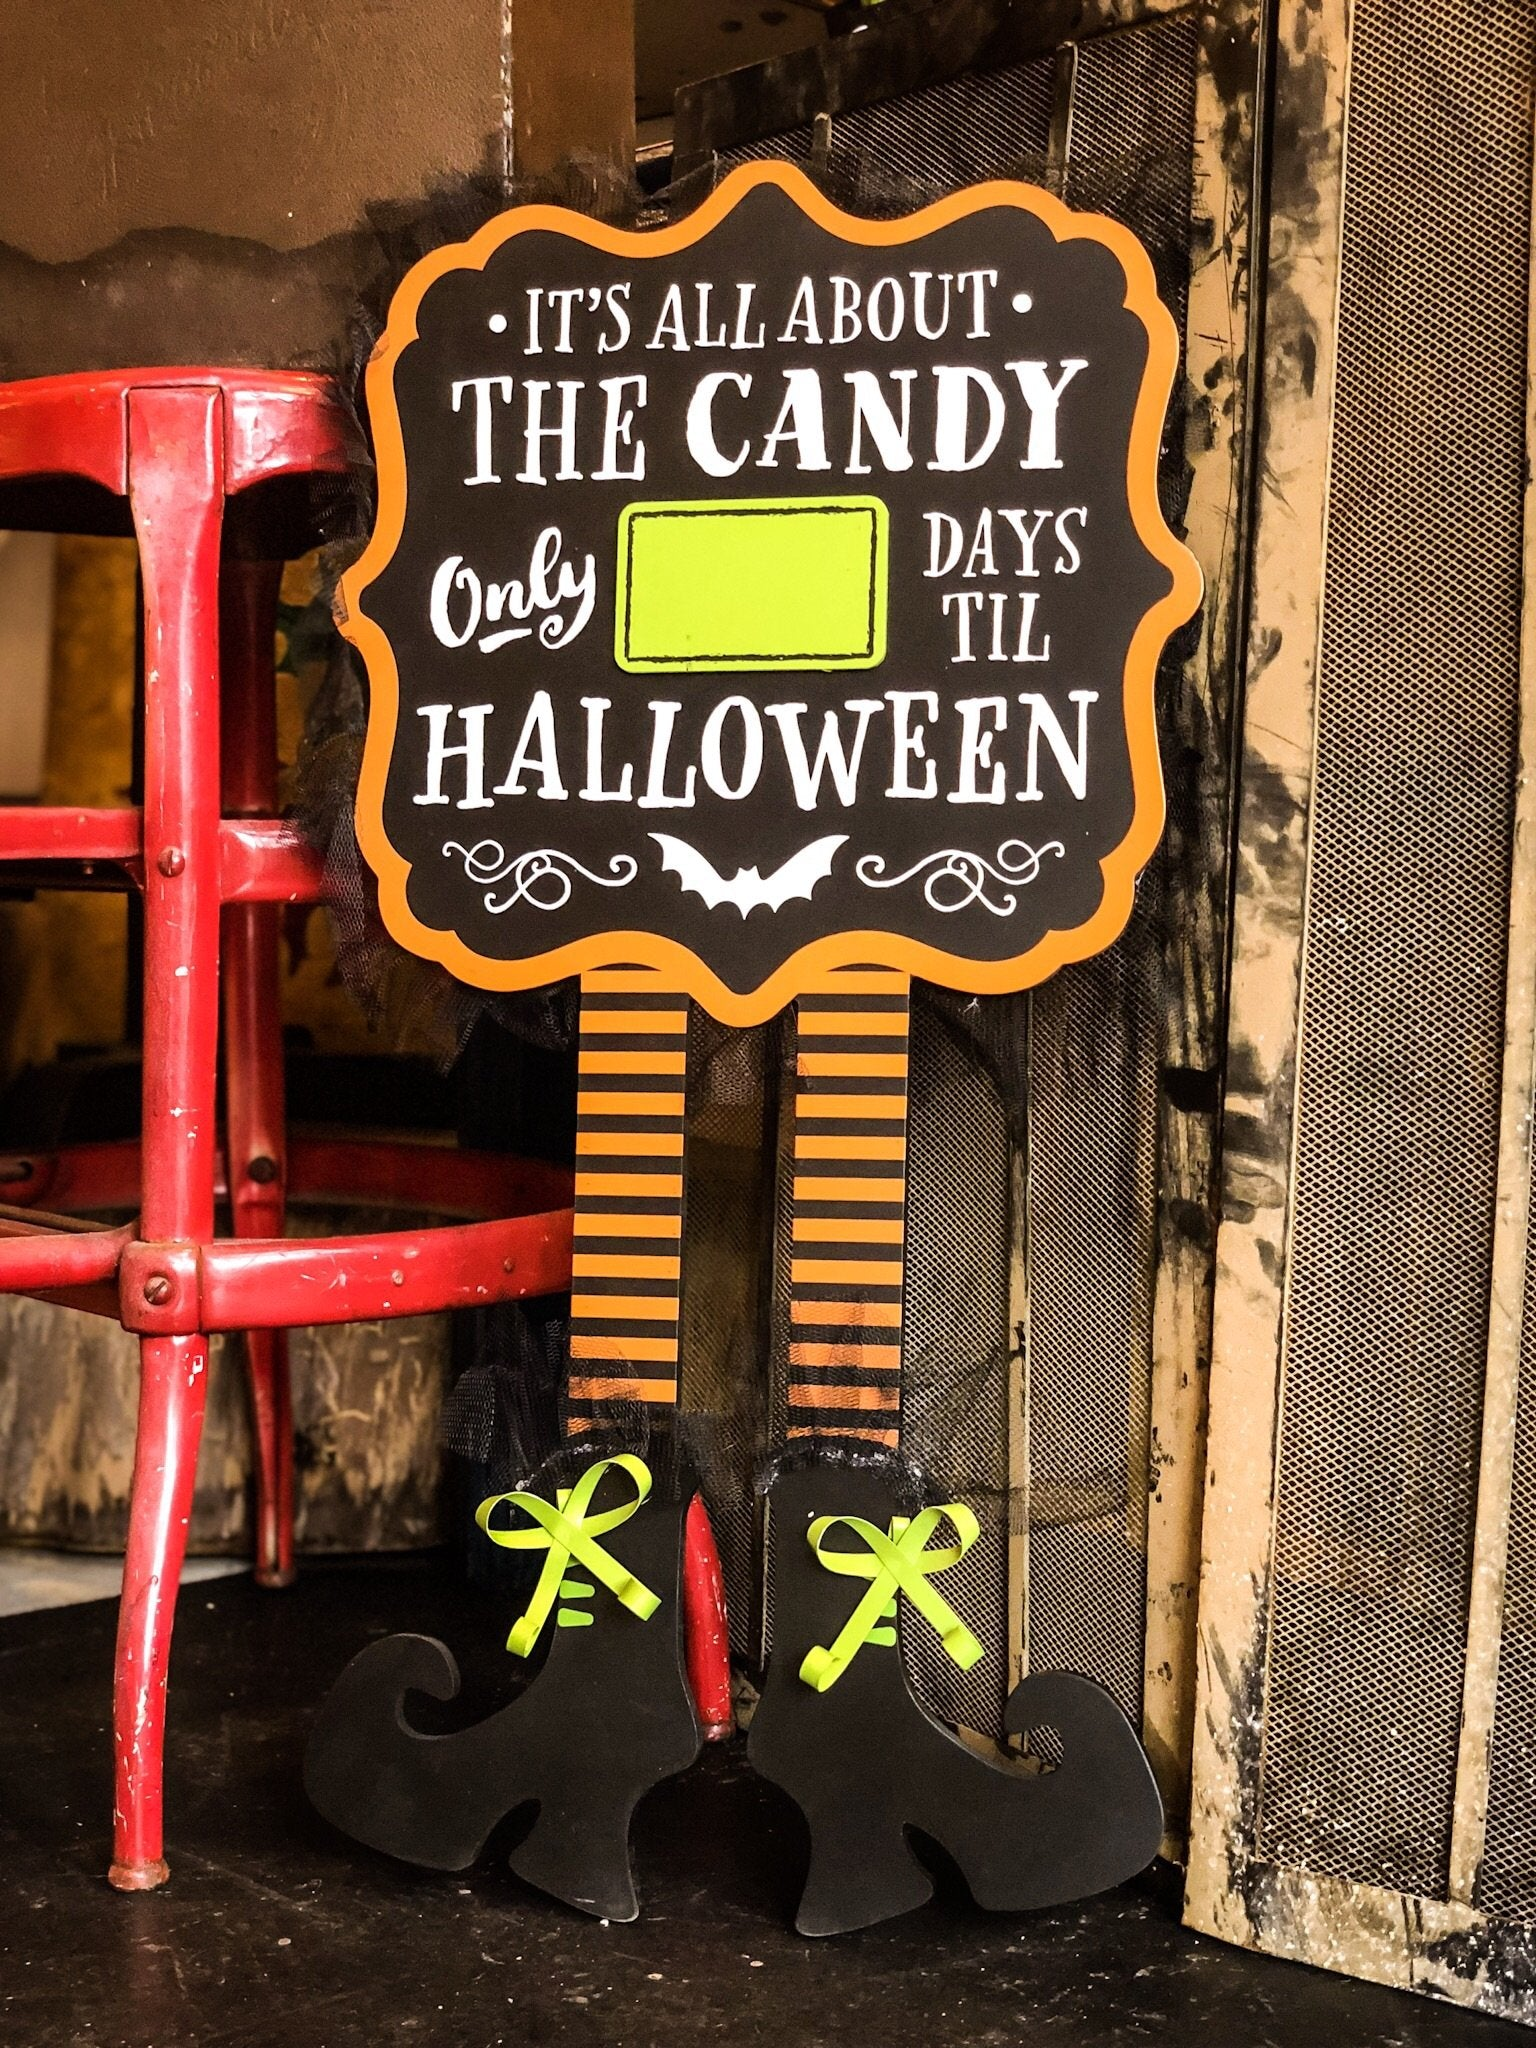 All About The Candy Countdown to Halloween Sign - Walking Pants Curiosities